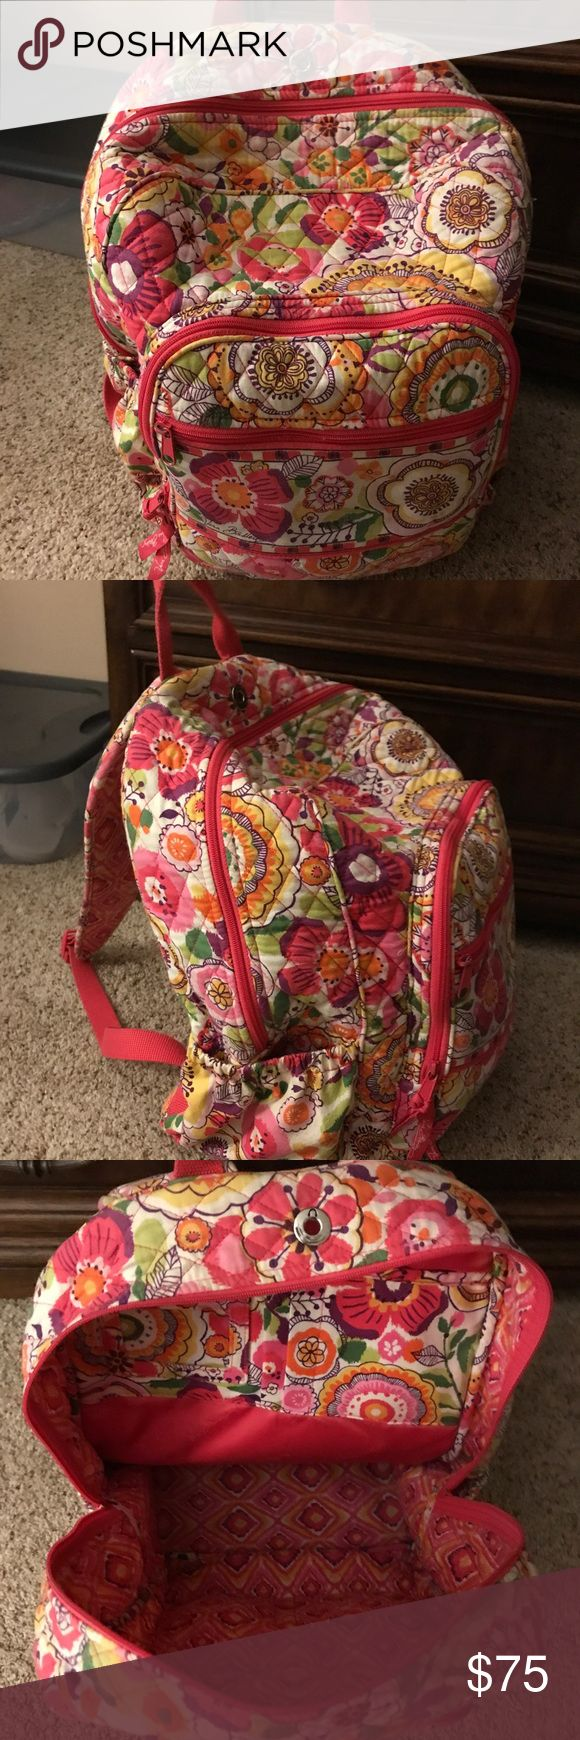 Vera Bradley Full Size Backpack This could fit all your books for school! Plus, it's super soft❤️ Used a few times before. Only flaws are a few signs of wear and 2 super small tears in the fabric (see pics). Let me know if you want any more pics!! **Comes from a house with pets** I don't do trades. Vera Bradley Bags Backpacks